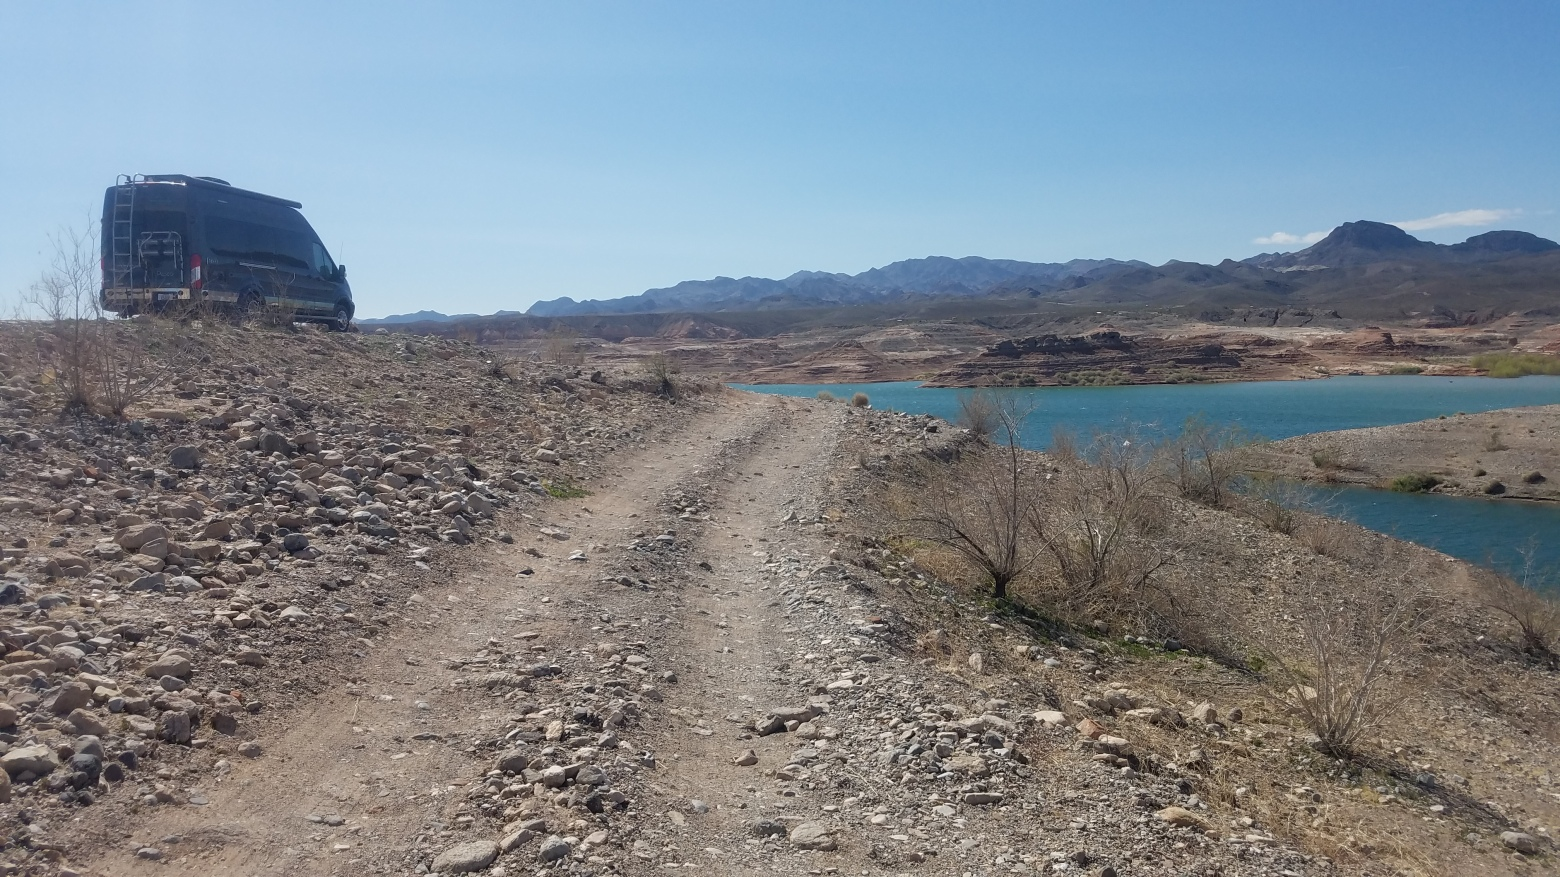 Boondocking Site Review - Government Wash, Lake Mead, NV